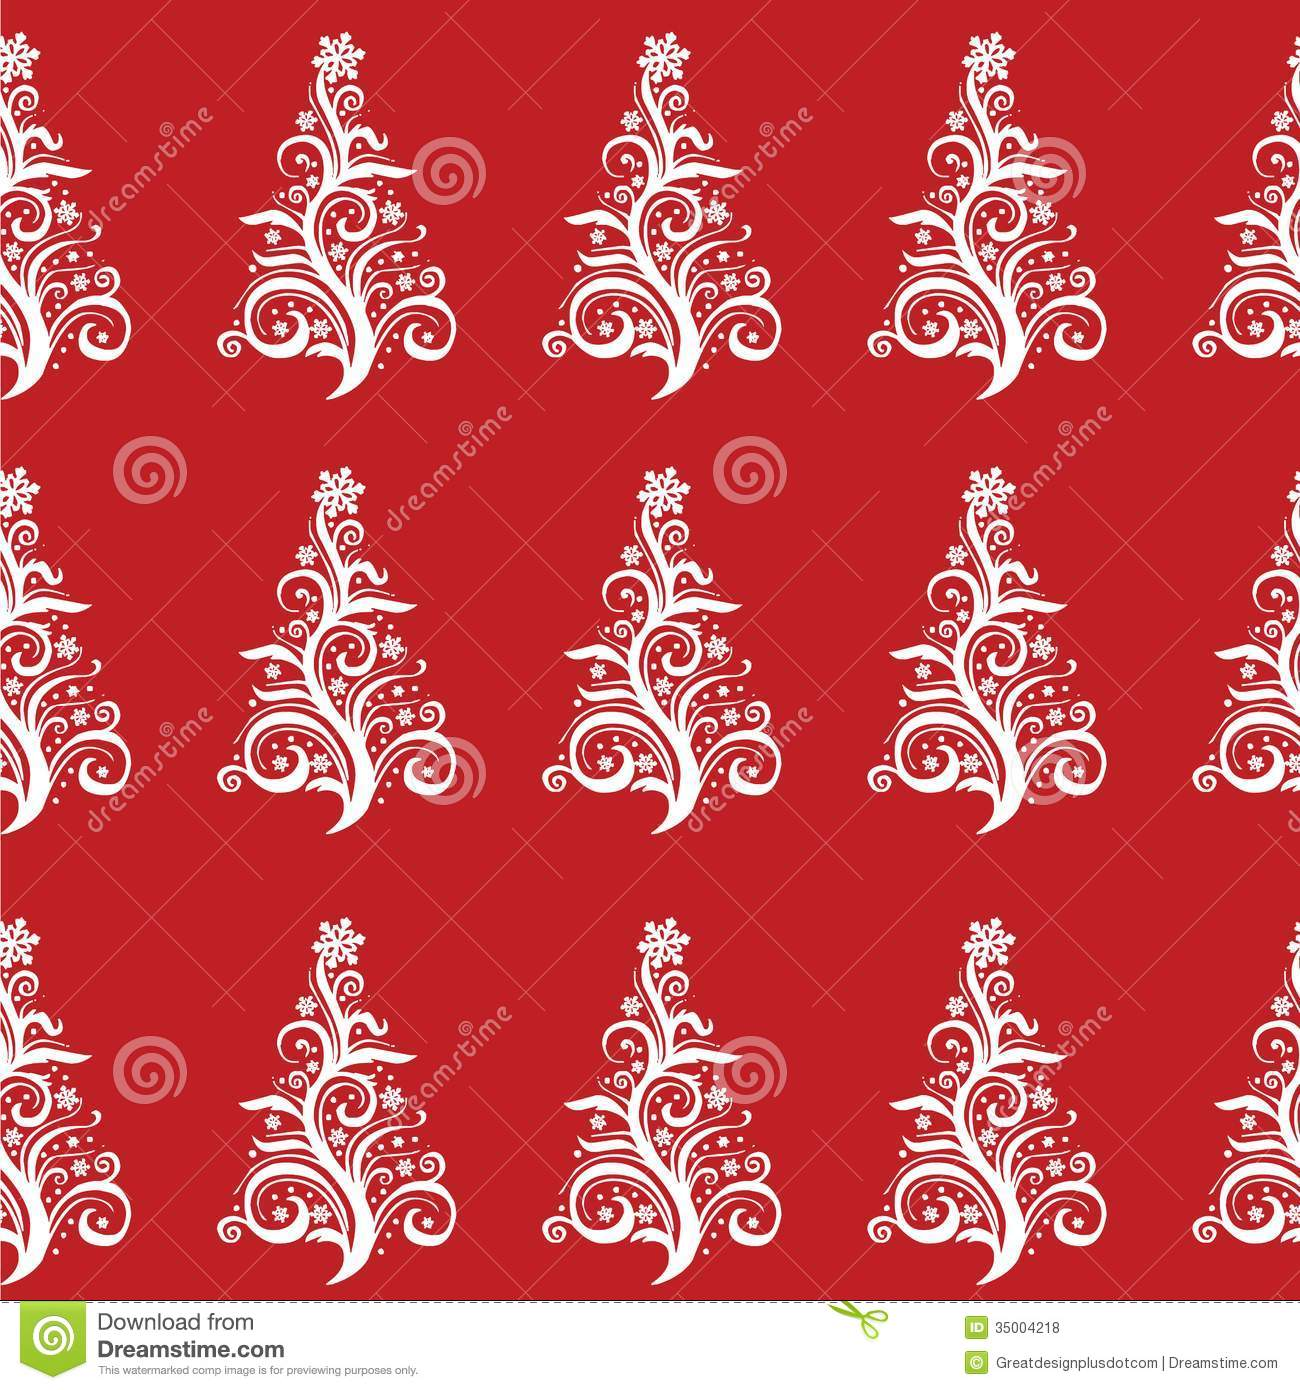 ... of white christmas trees on a red background. Vector eps10 / clip art